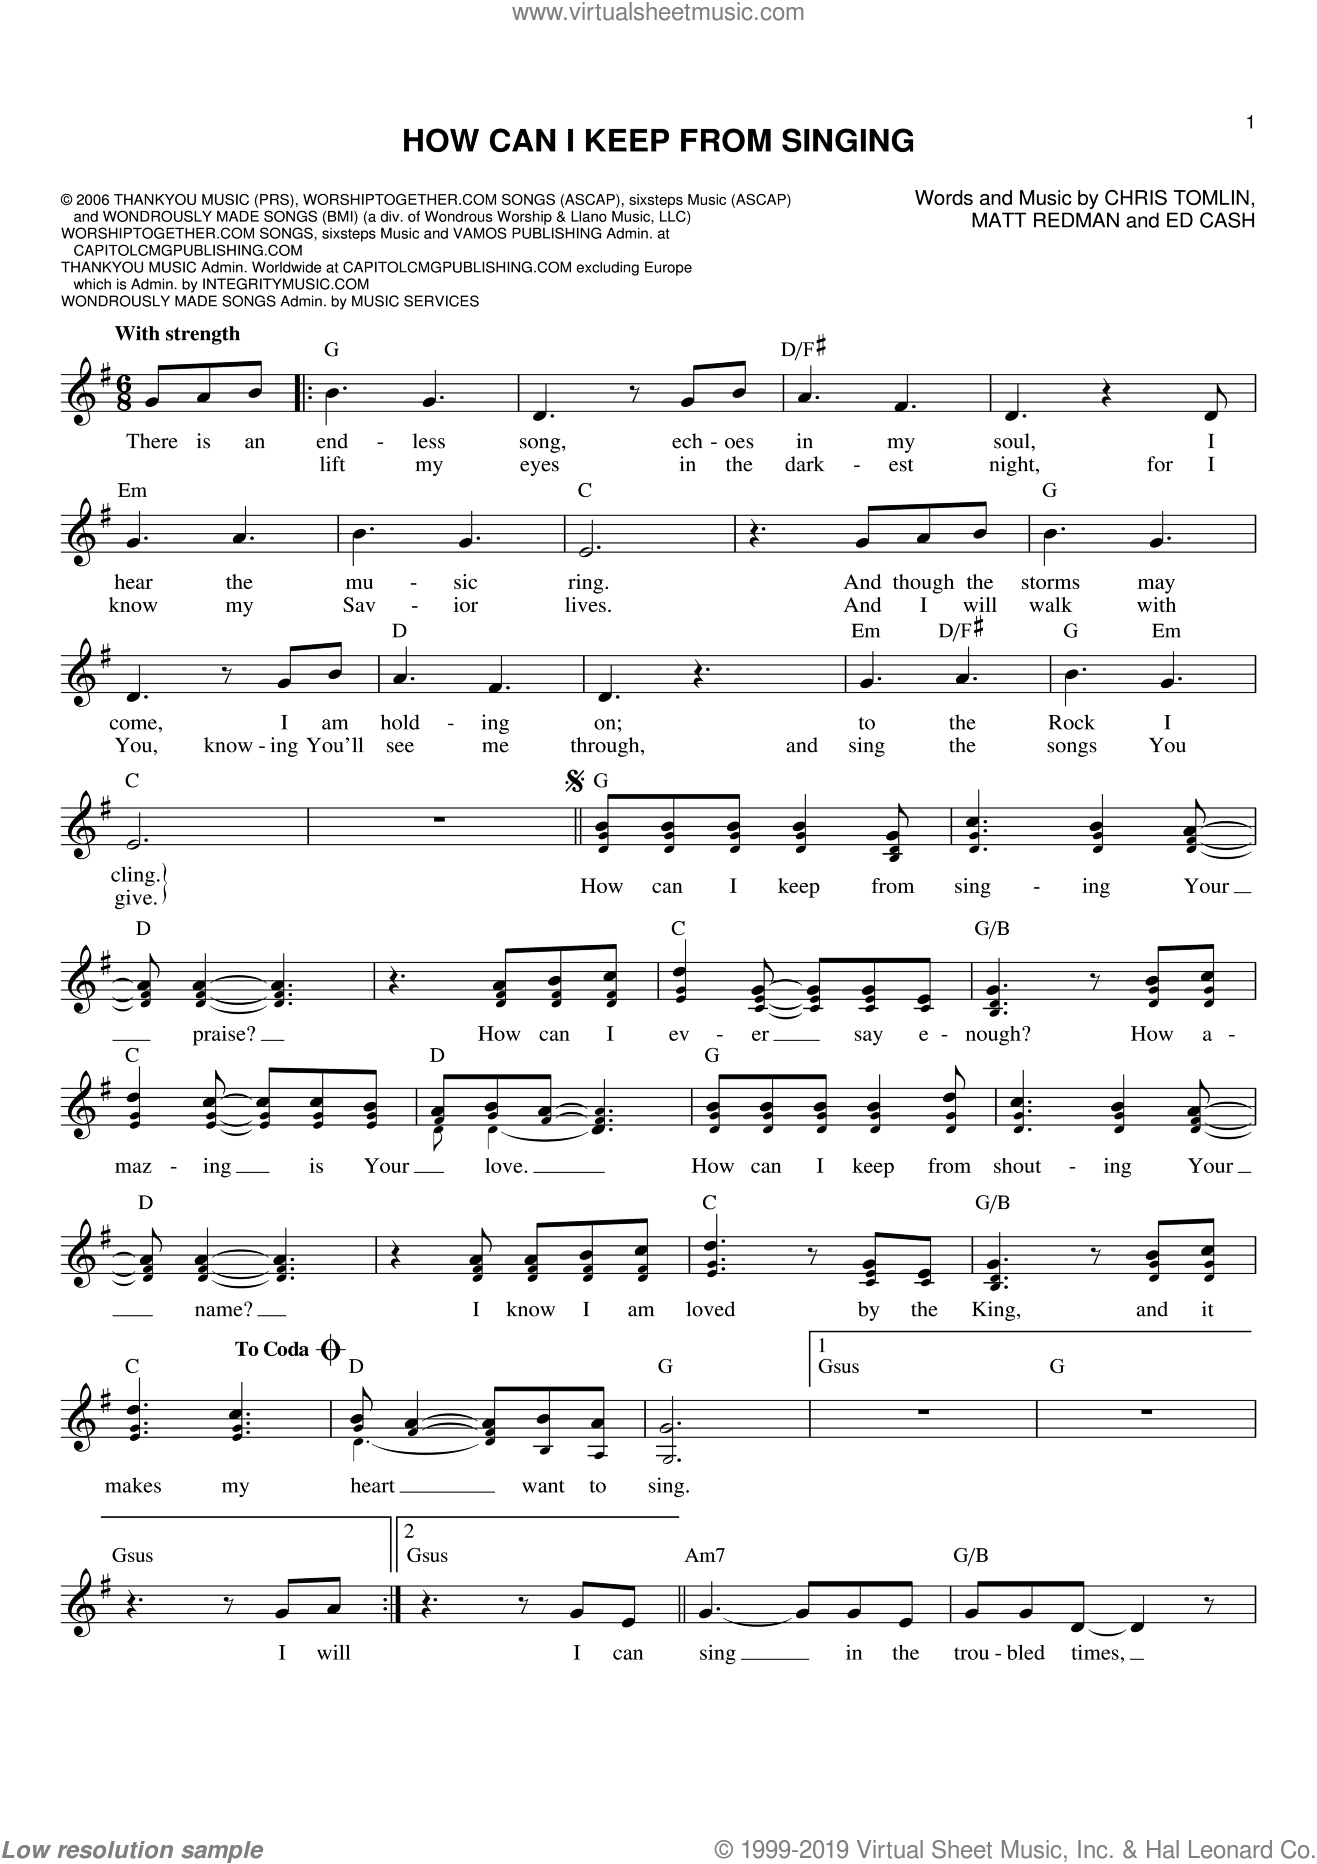 How Can I Keep From Singing sheet music for voice and other instruments (fake book) by Chris Tomlin, Ed Cash and Matt Redman, intermediate skill level